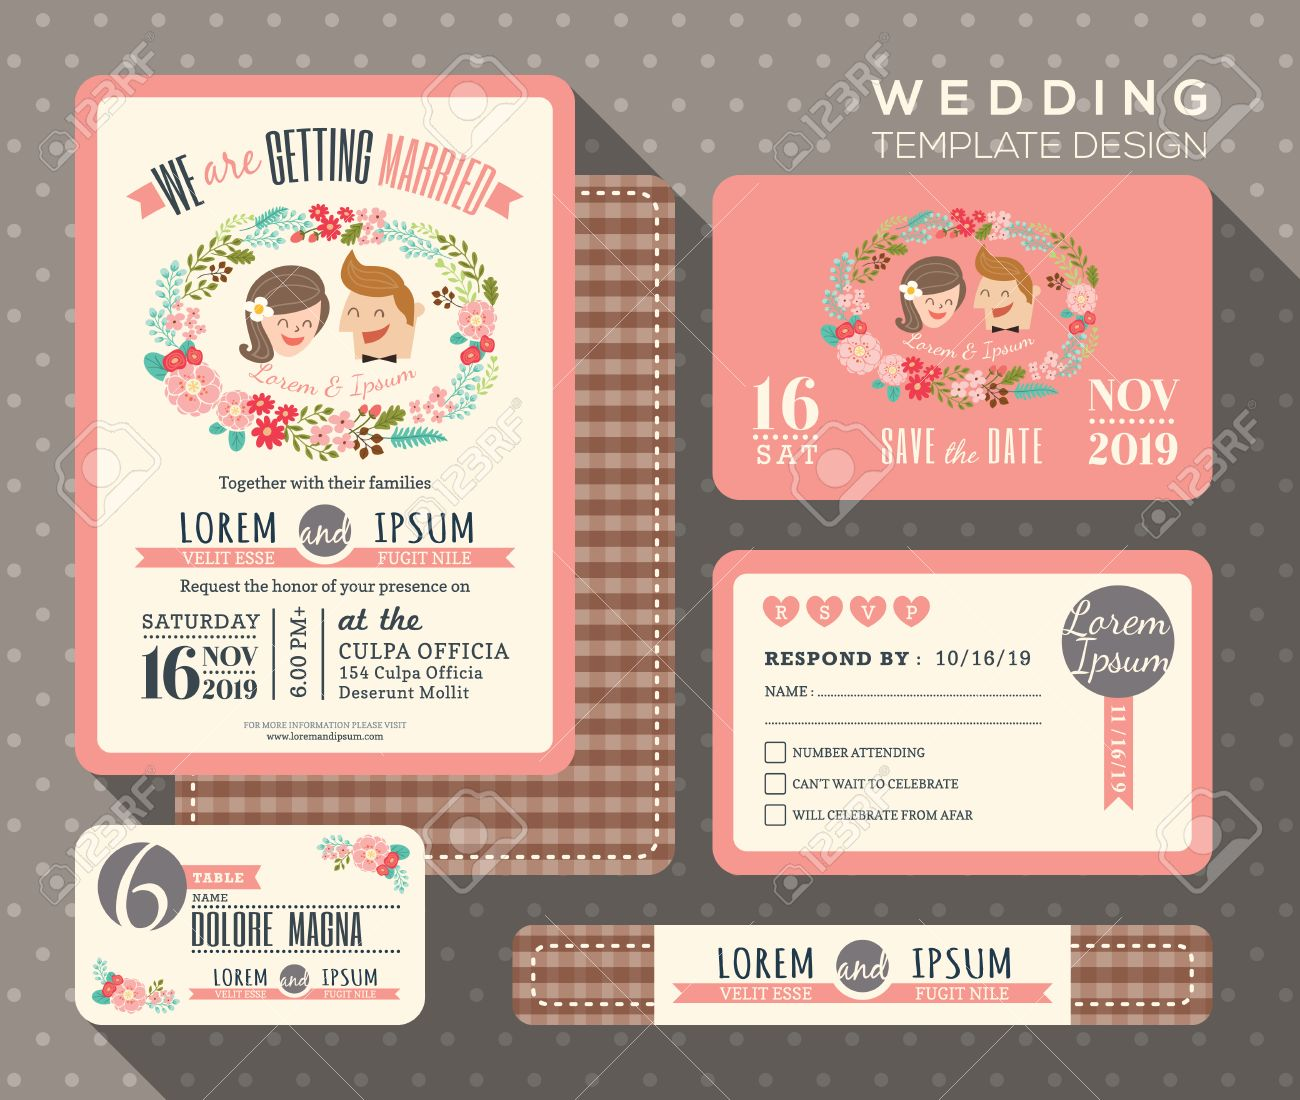 53061937 groom and bride cartoon retro wedding invitation set design Template Vector place card response card Stock Vector groom and bride cartoon retro wedding invitation set design,Invitation And Response Card Set